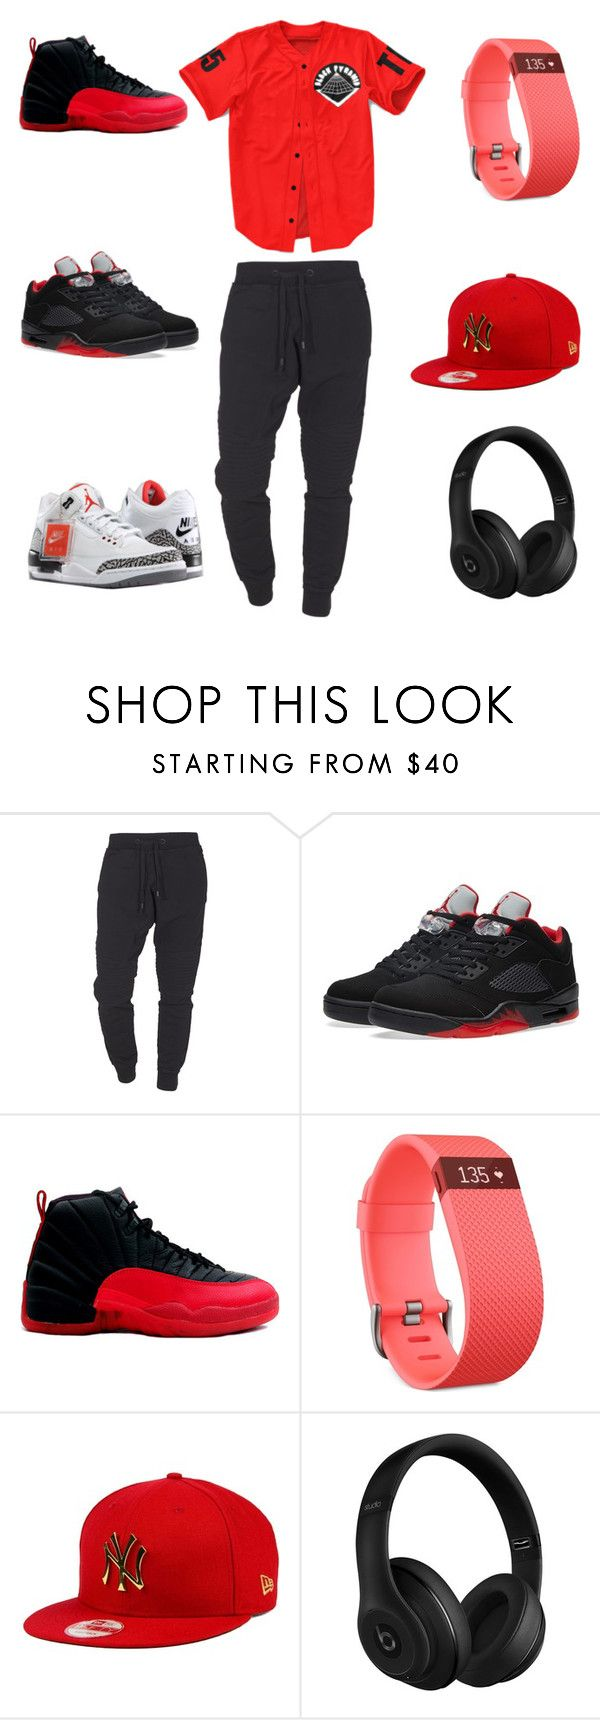 """dope"" by aleisharodriguez ❤ liked on Polyvore featuring TIGHA, NIKE, Retrò, Fitbit, New Era, Beats by Dr. Dre, men's fashion and menswear"